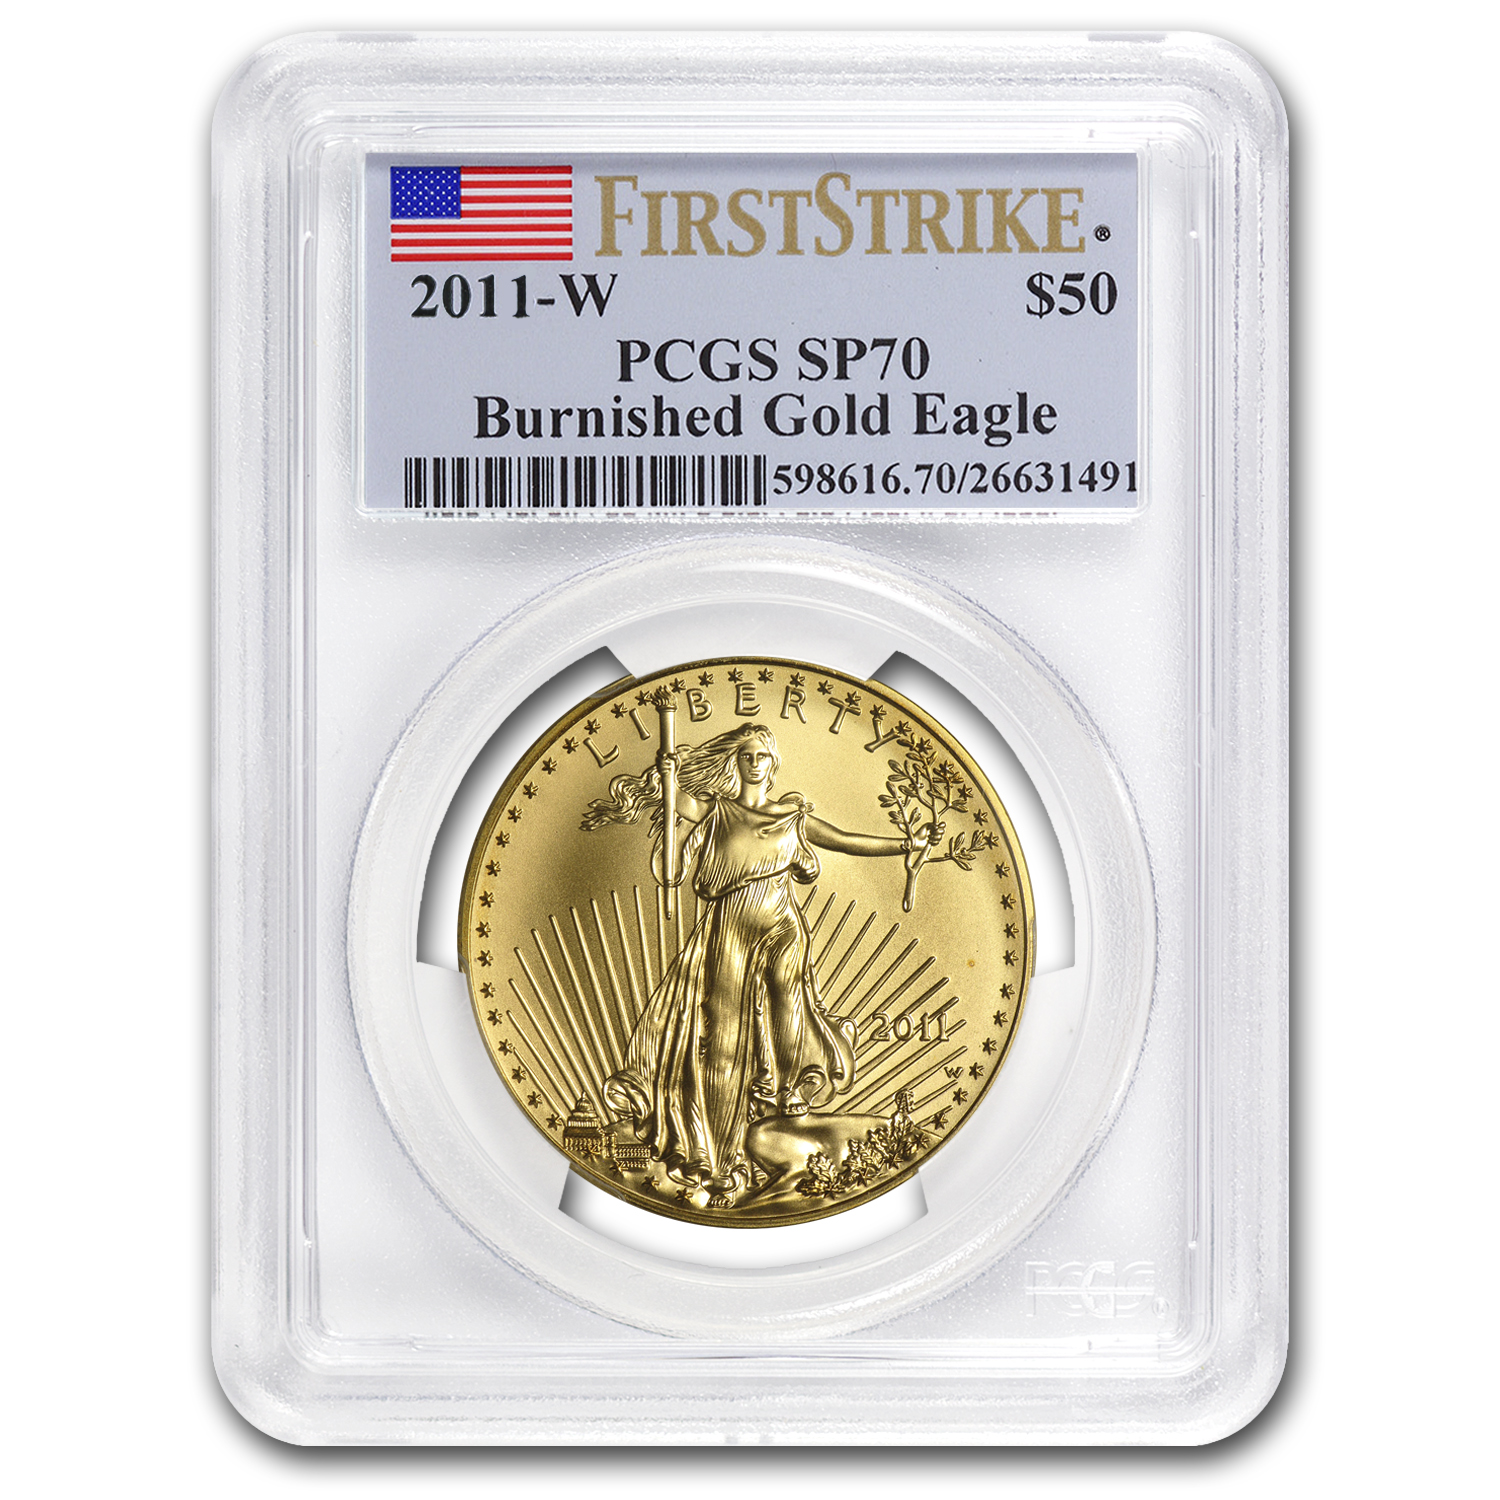 2011-W 1 oz Burnished Gold Eagle MS-70 PCGS (First Strike)